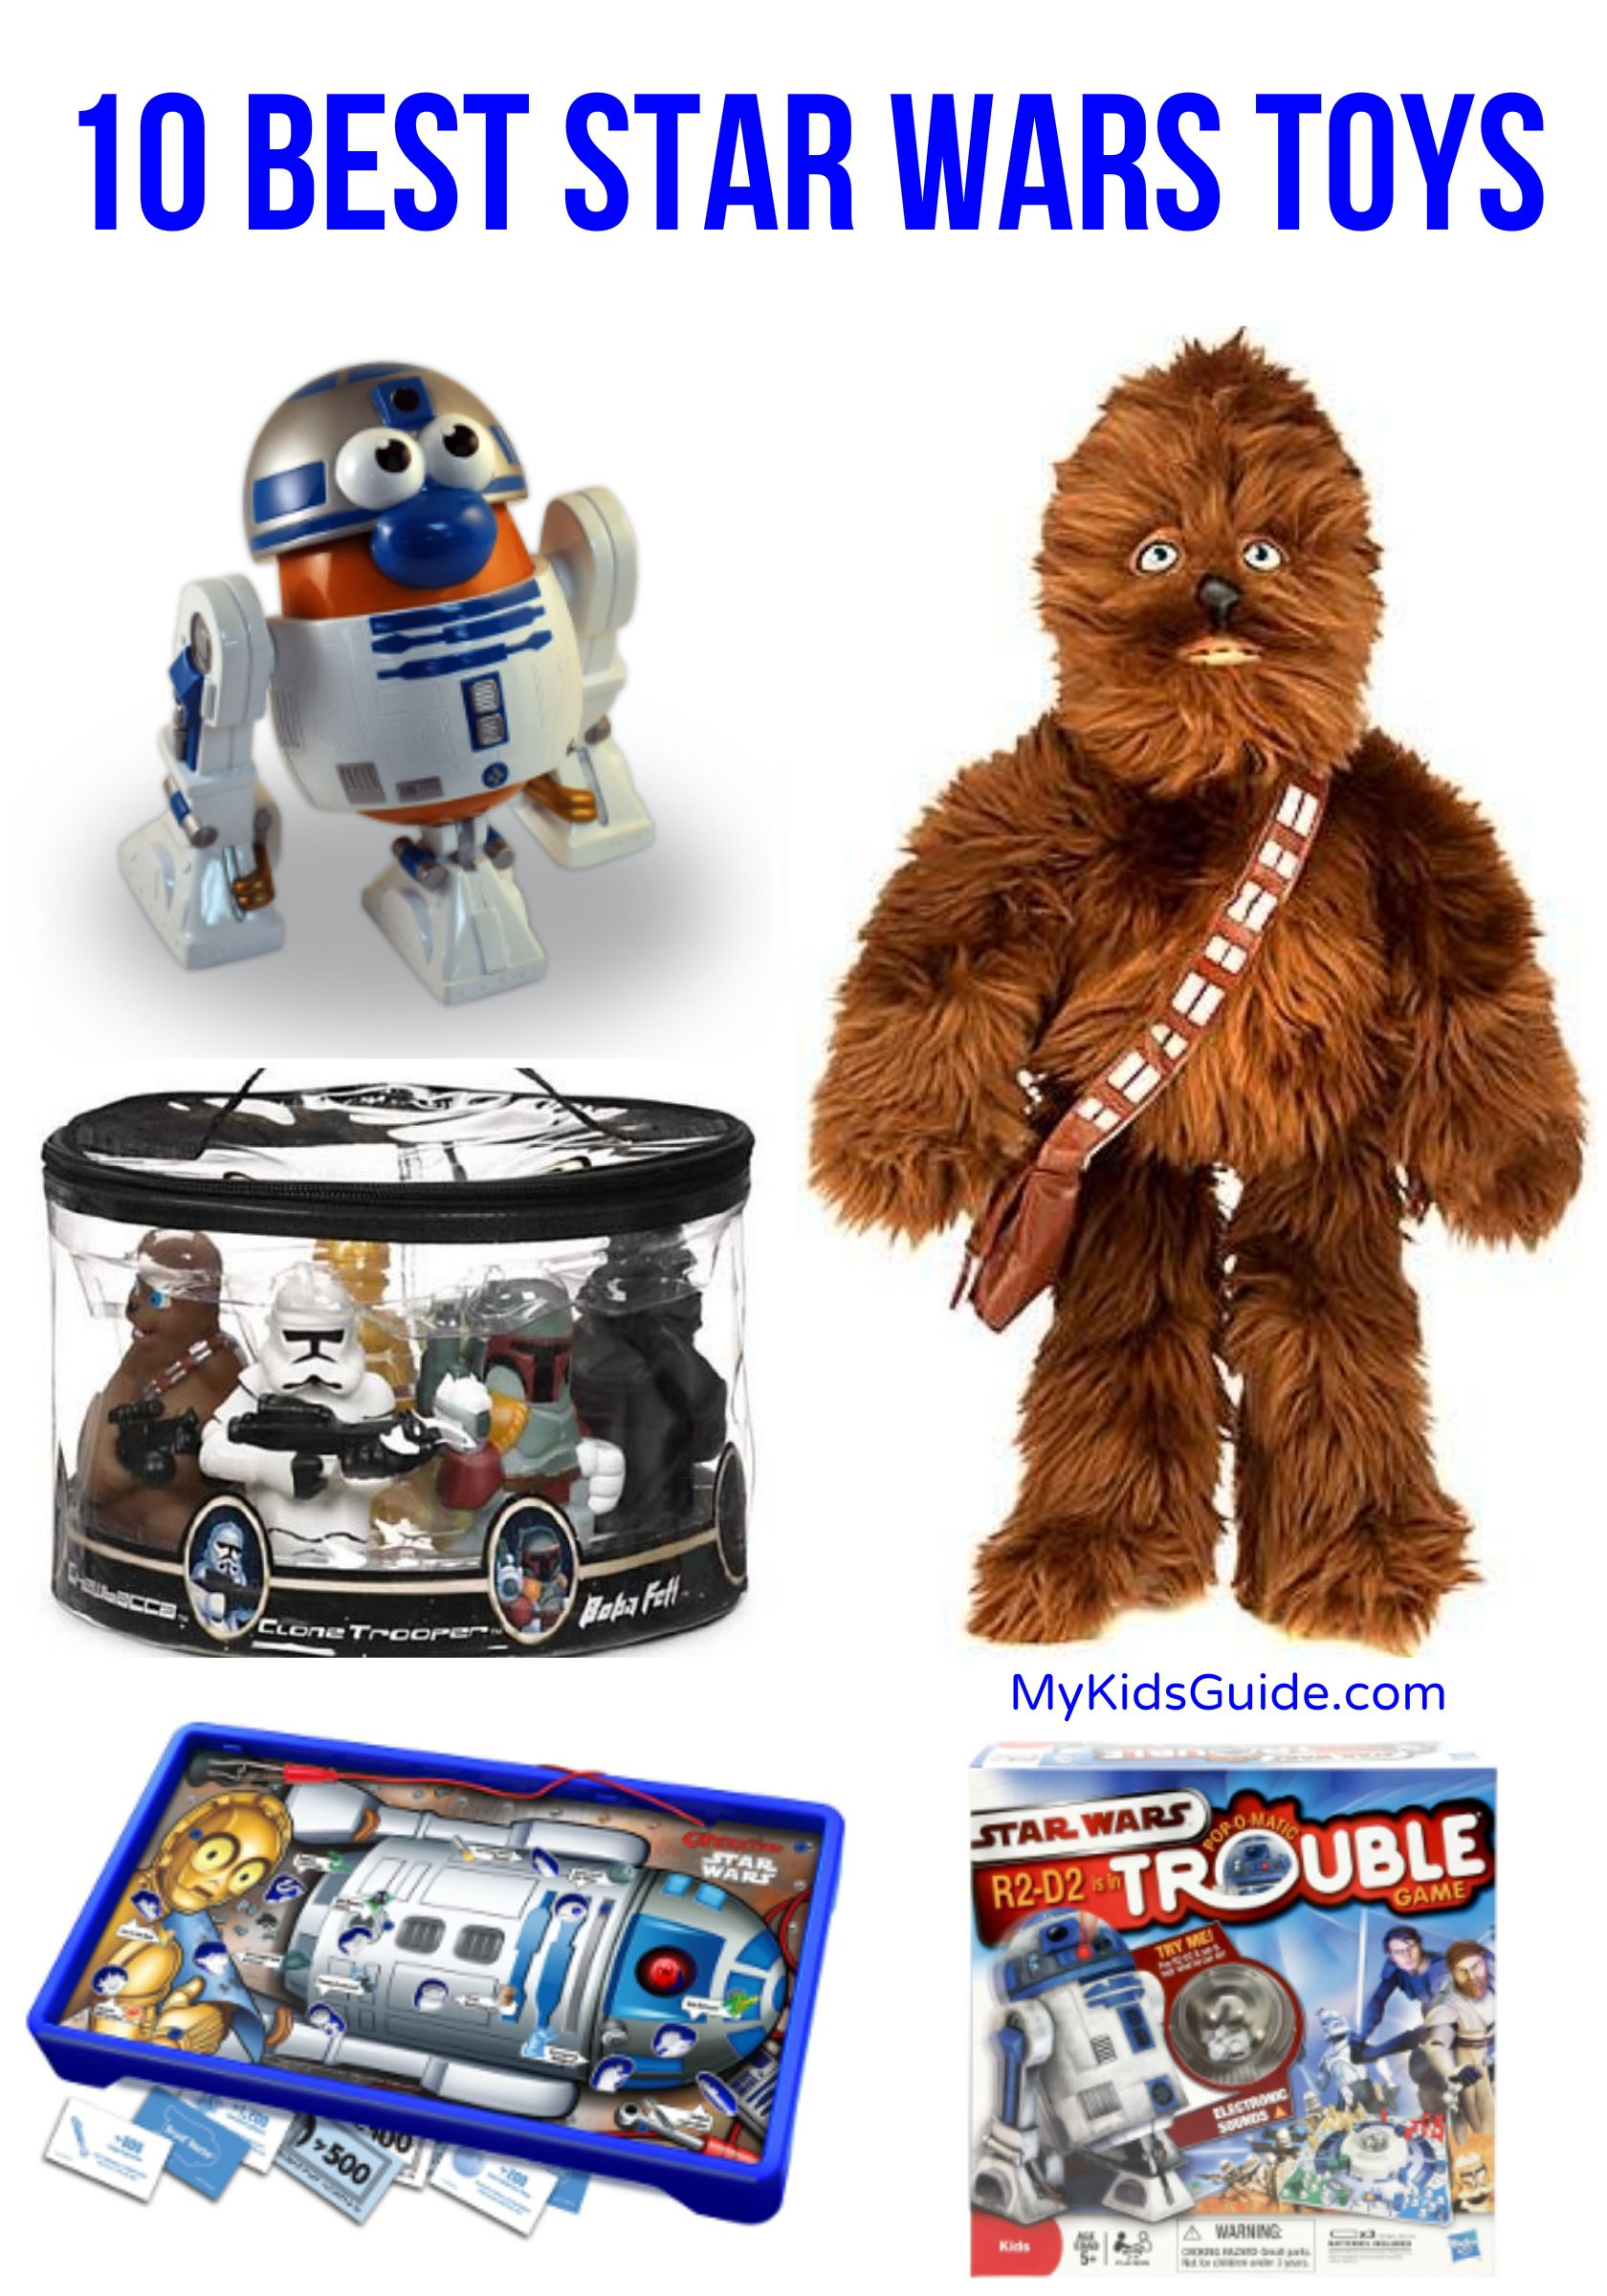 Best Star Wars Toys And Gifts : Best star wars toys for kids my guide